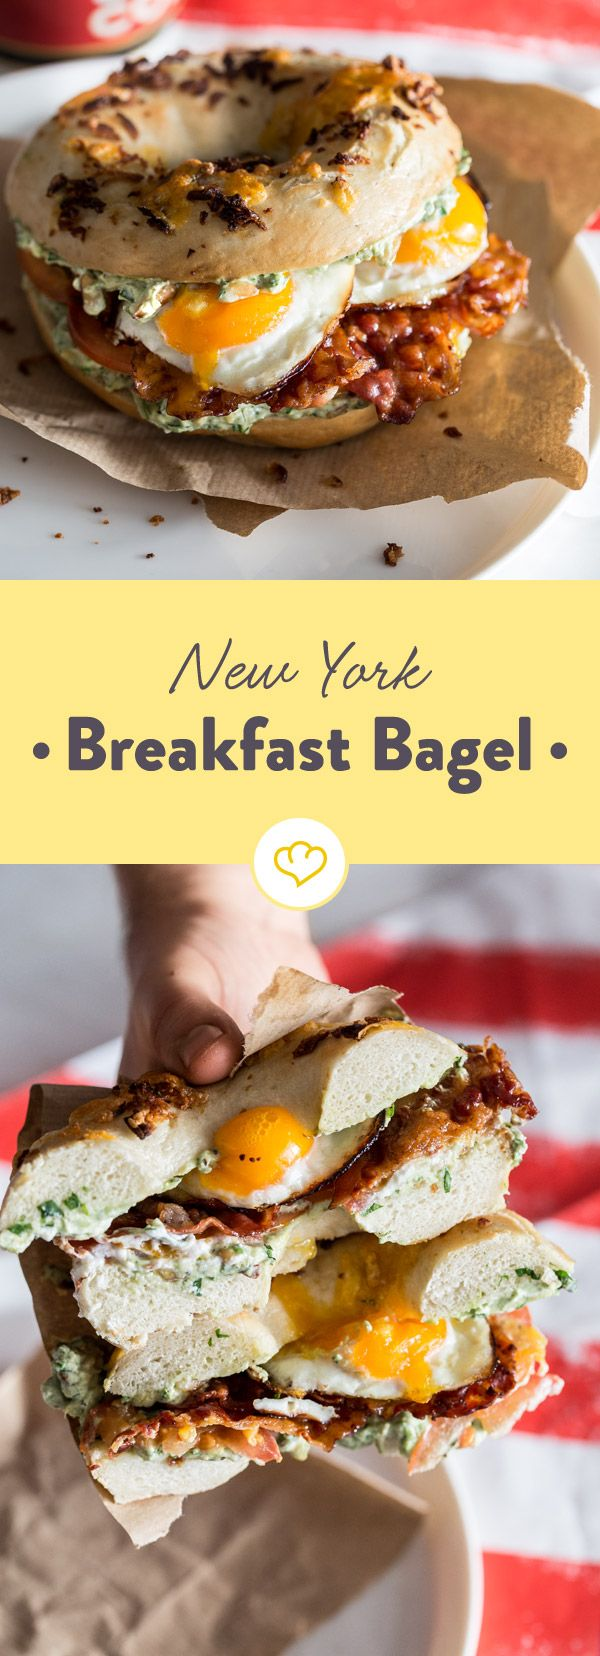 New York Breakfast Bagel #frühstückundbrunch